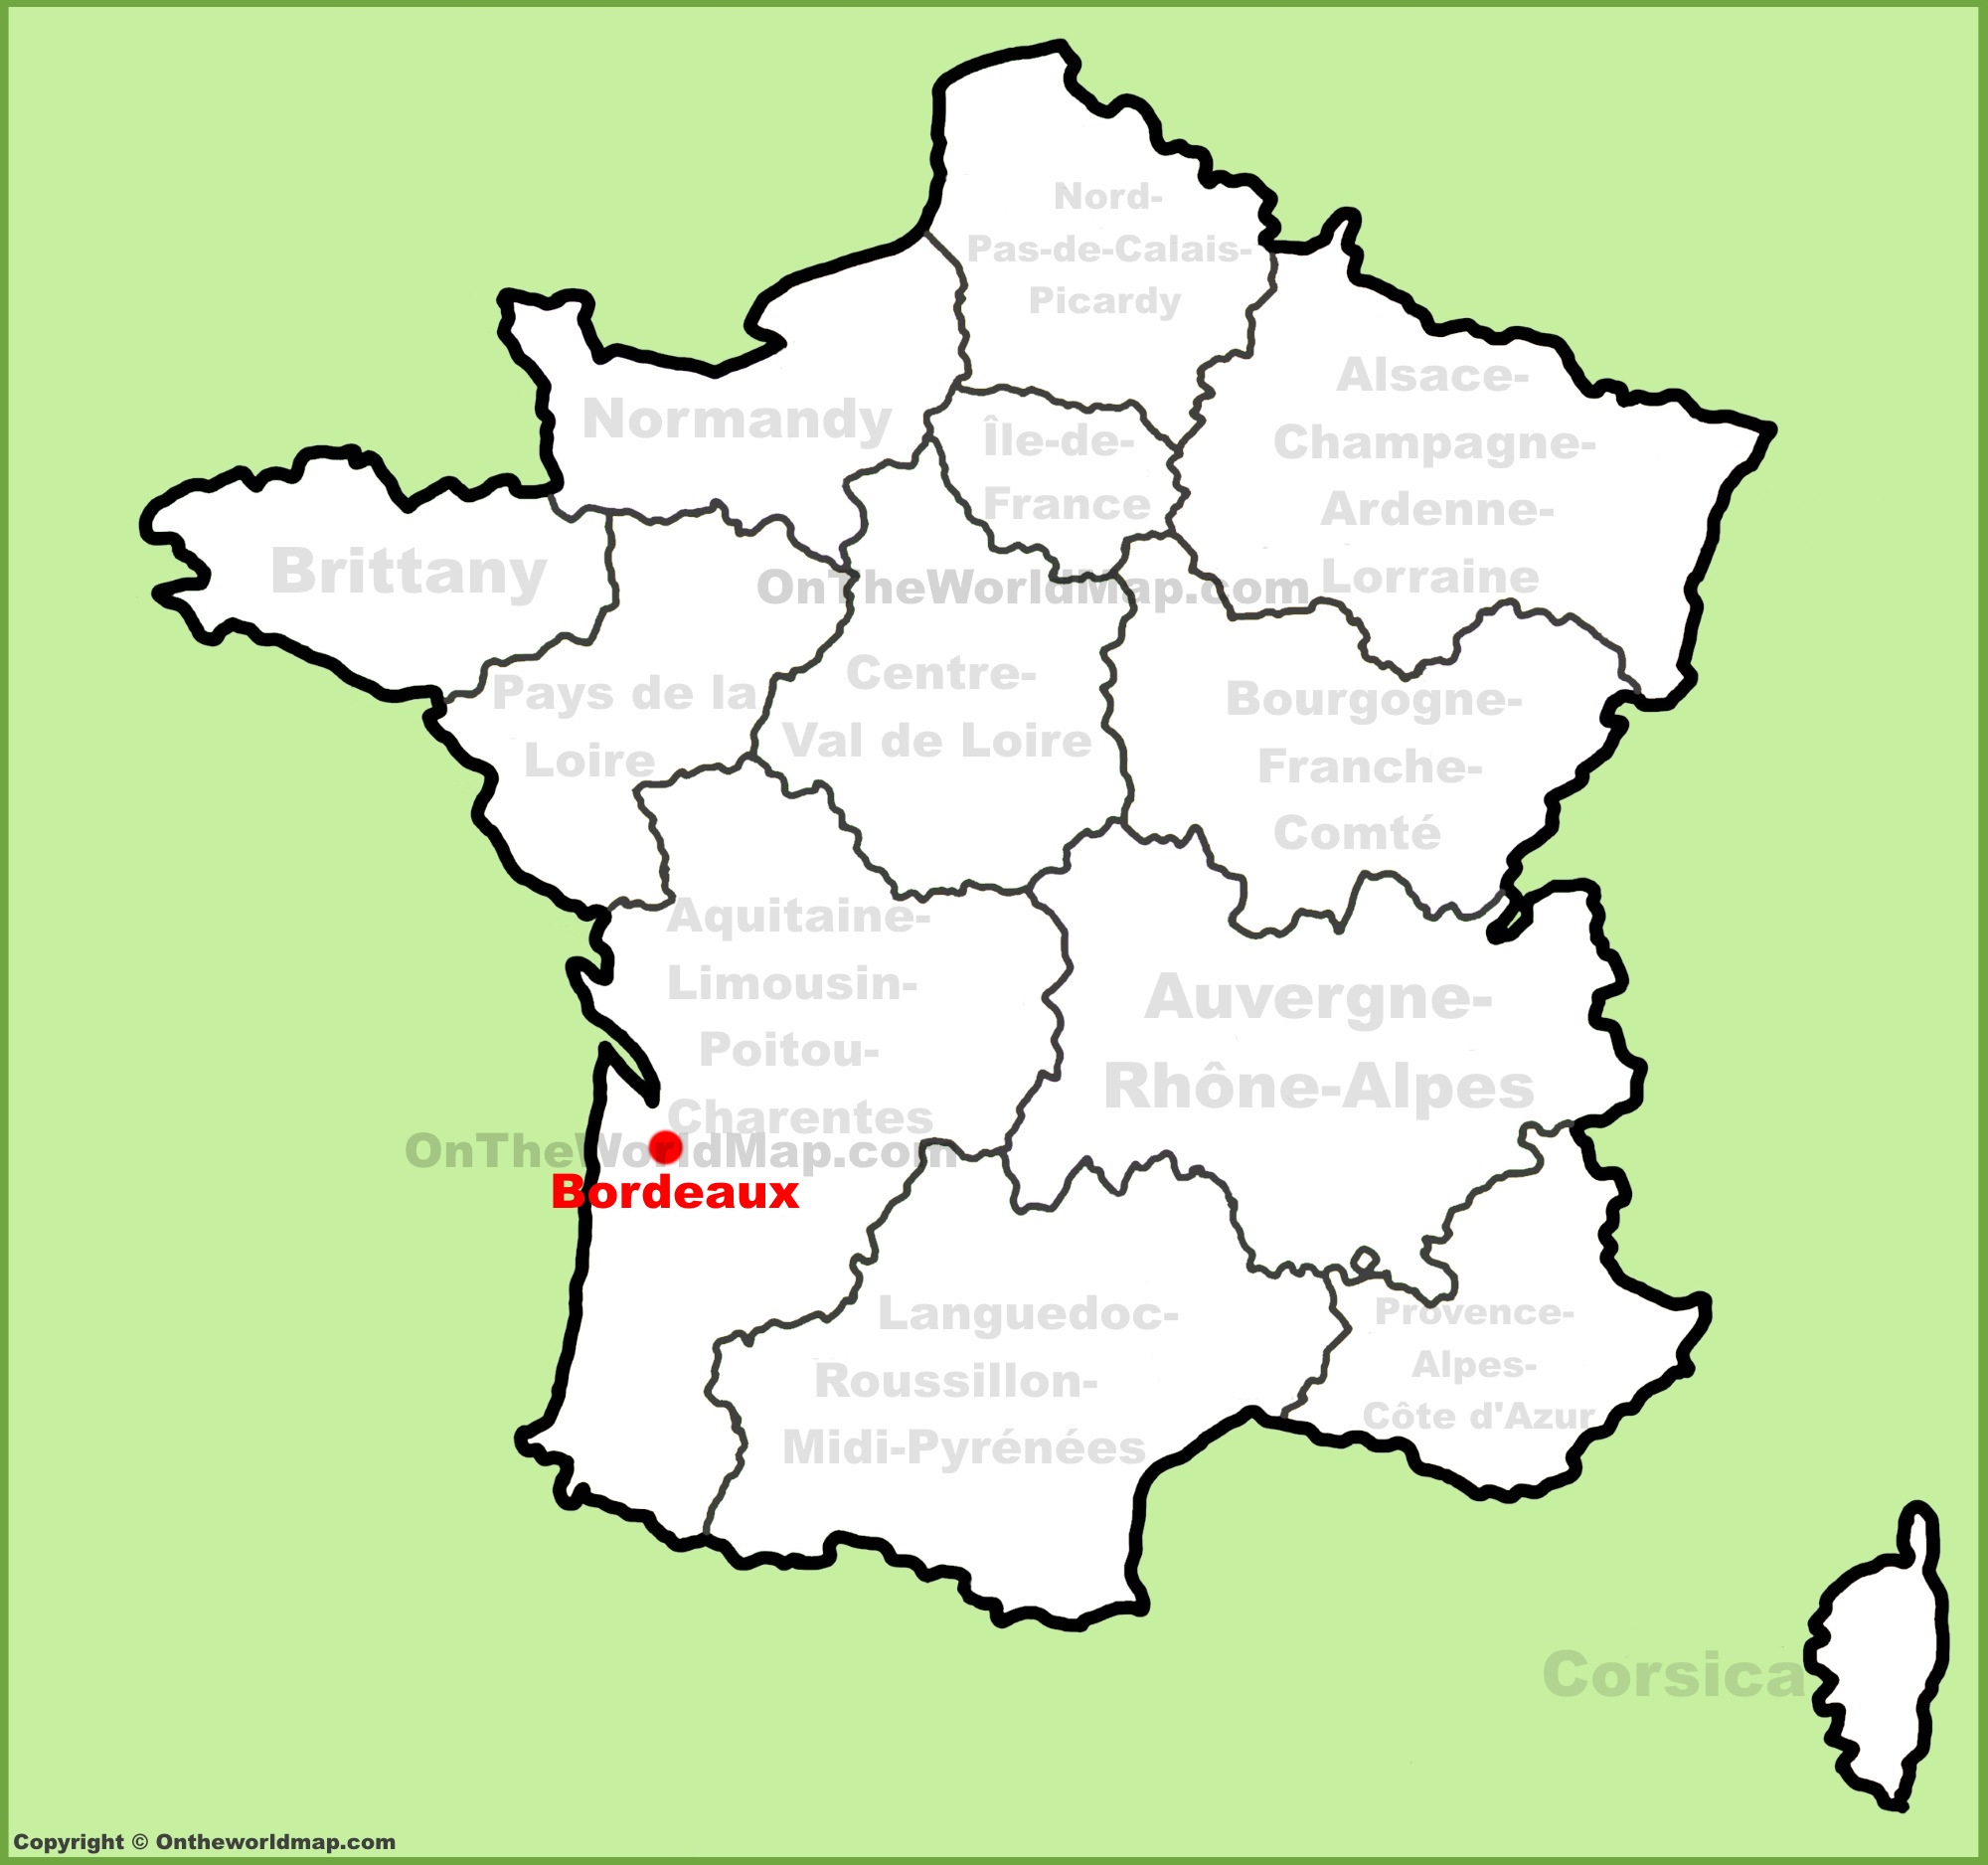 Map Of France Bordeaux.Bordeaux Location On The France Map